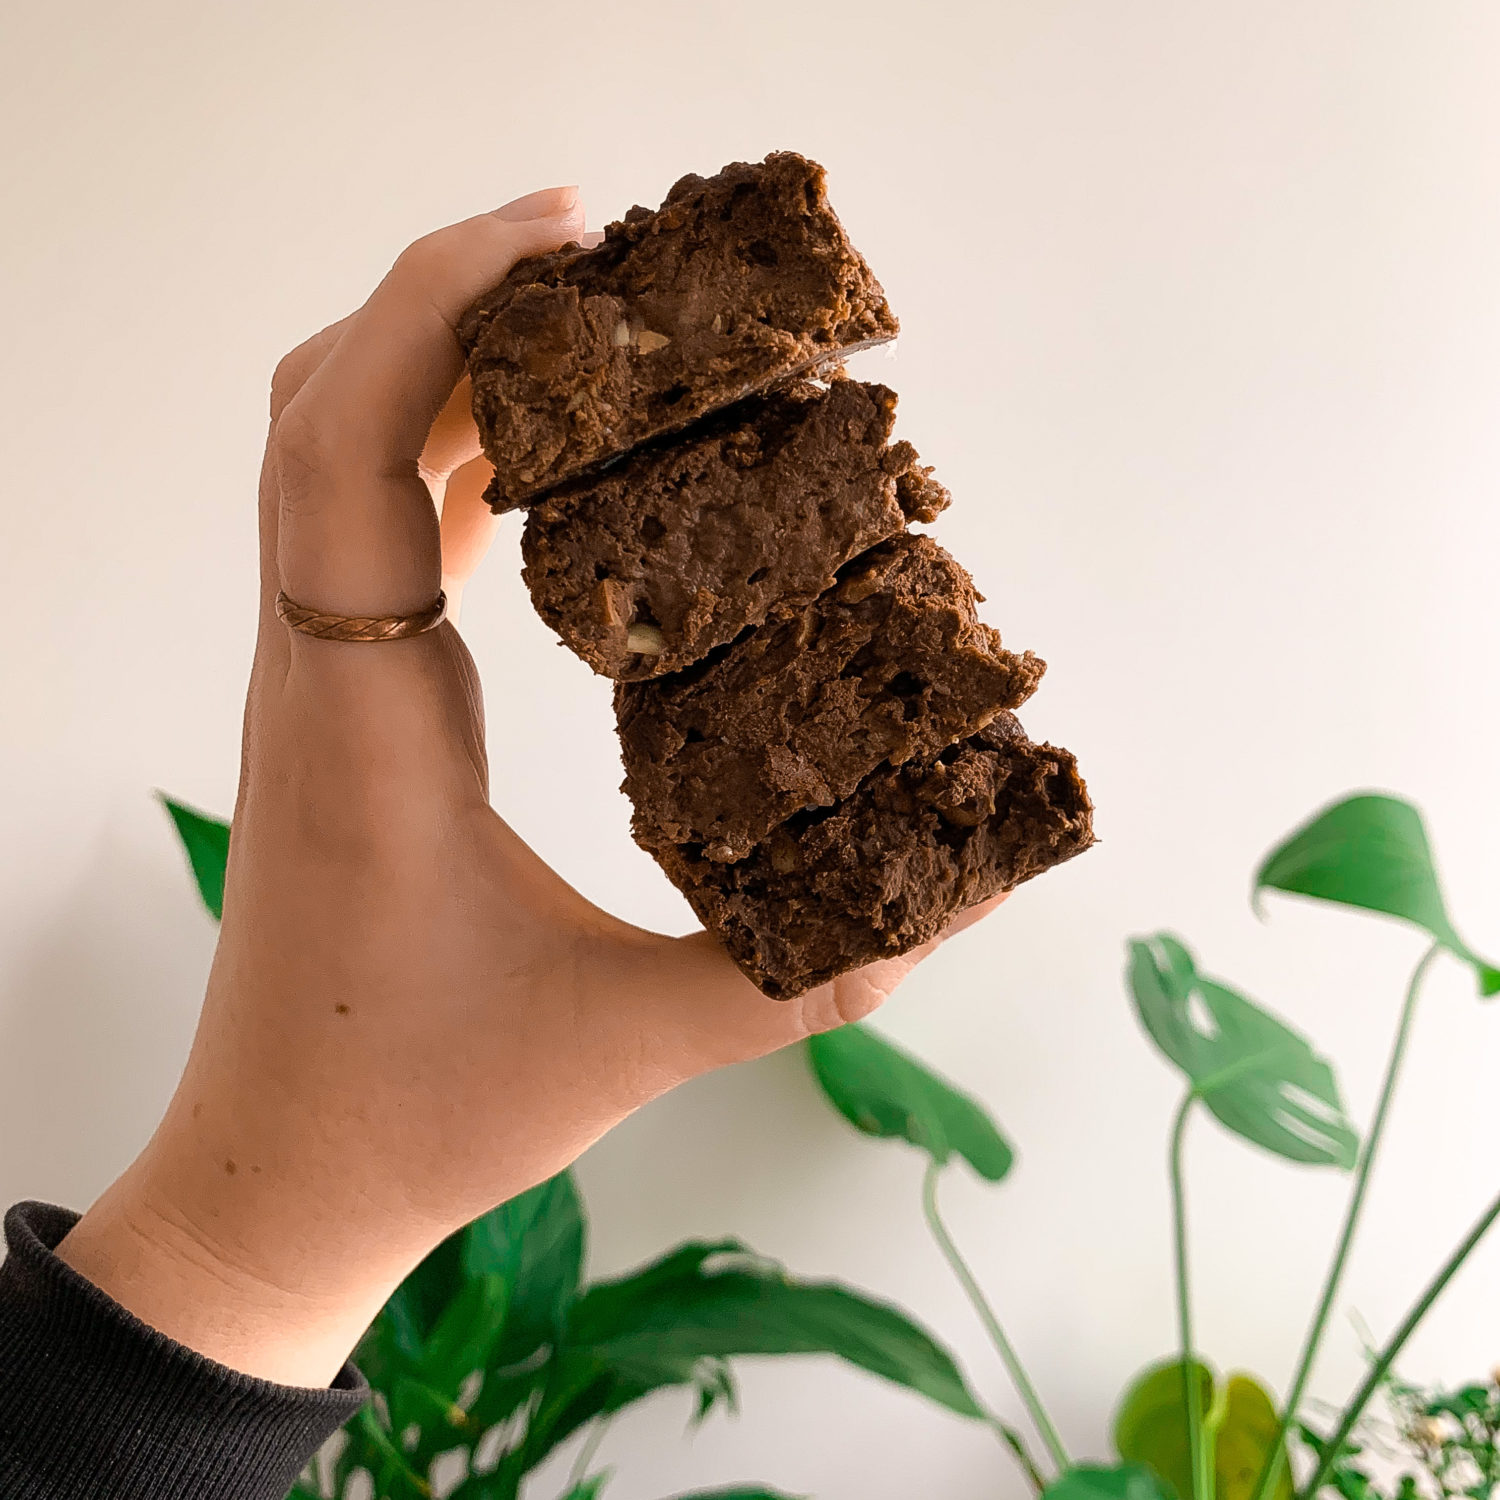 Easy vegan oat pulp brownies using the oat pulp leftover from making homemade oat milk.